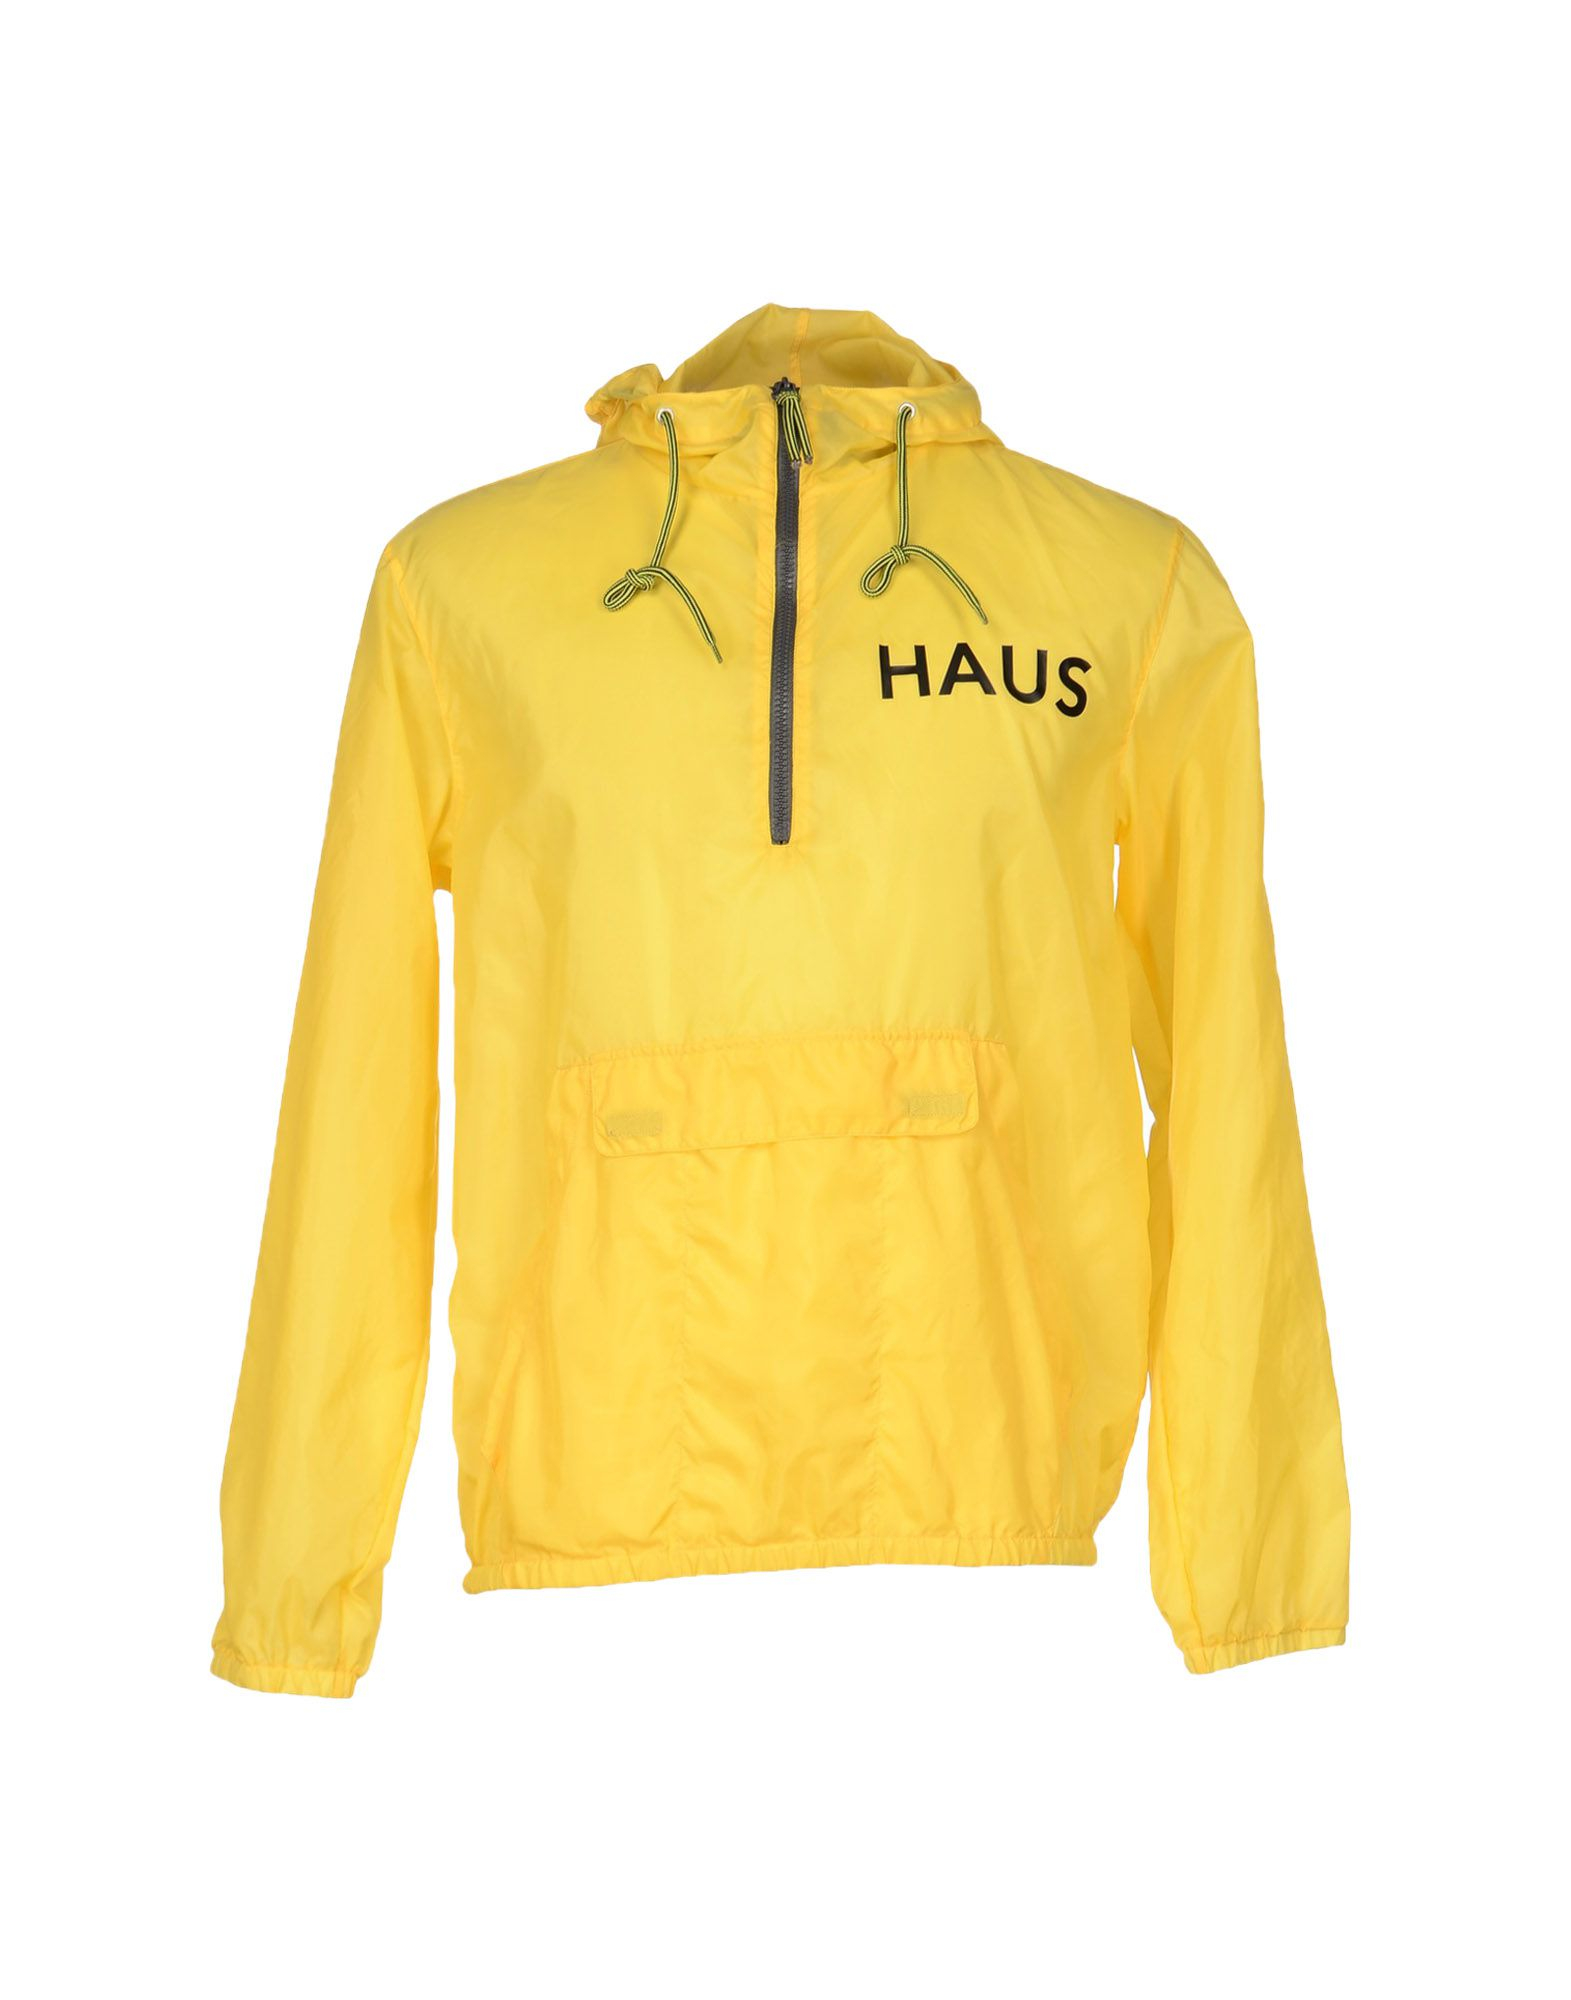 Haus By Golden Goose Deluxe Brand Jacket In White For Men